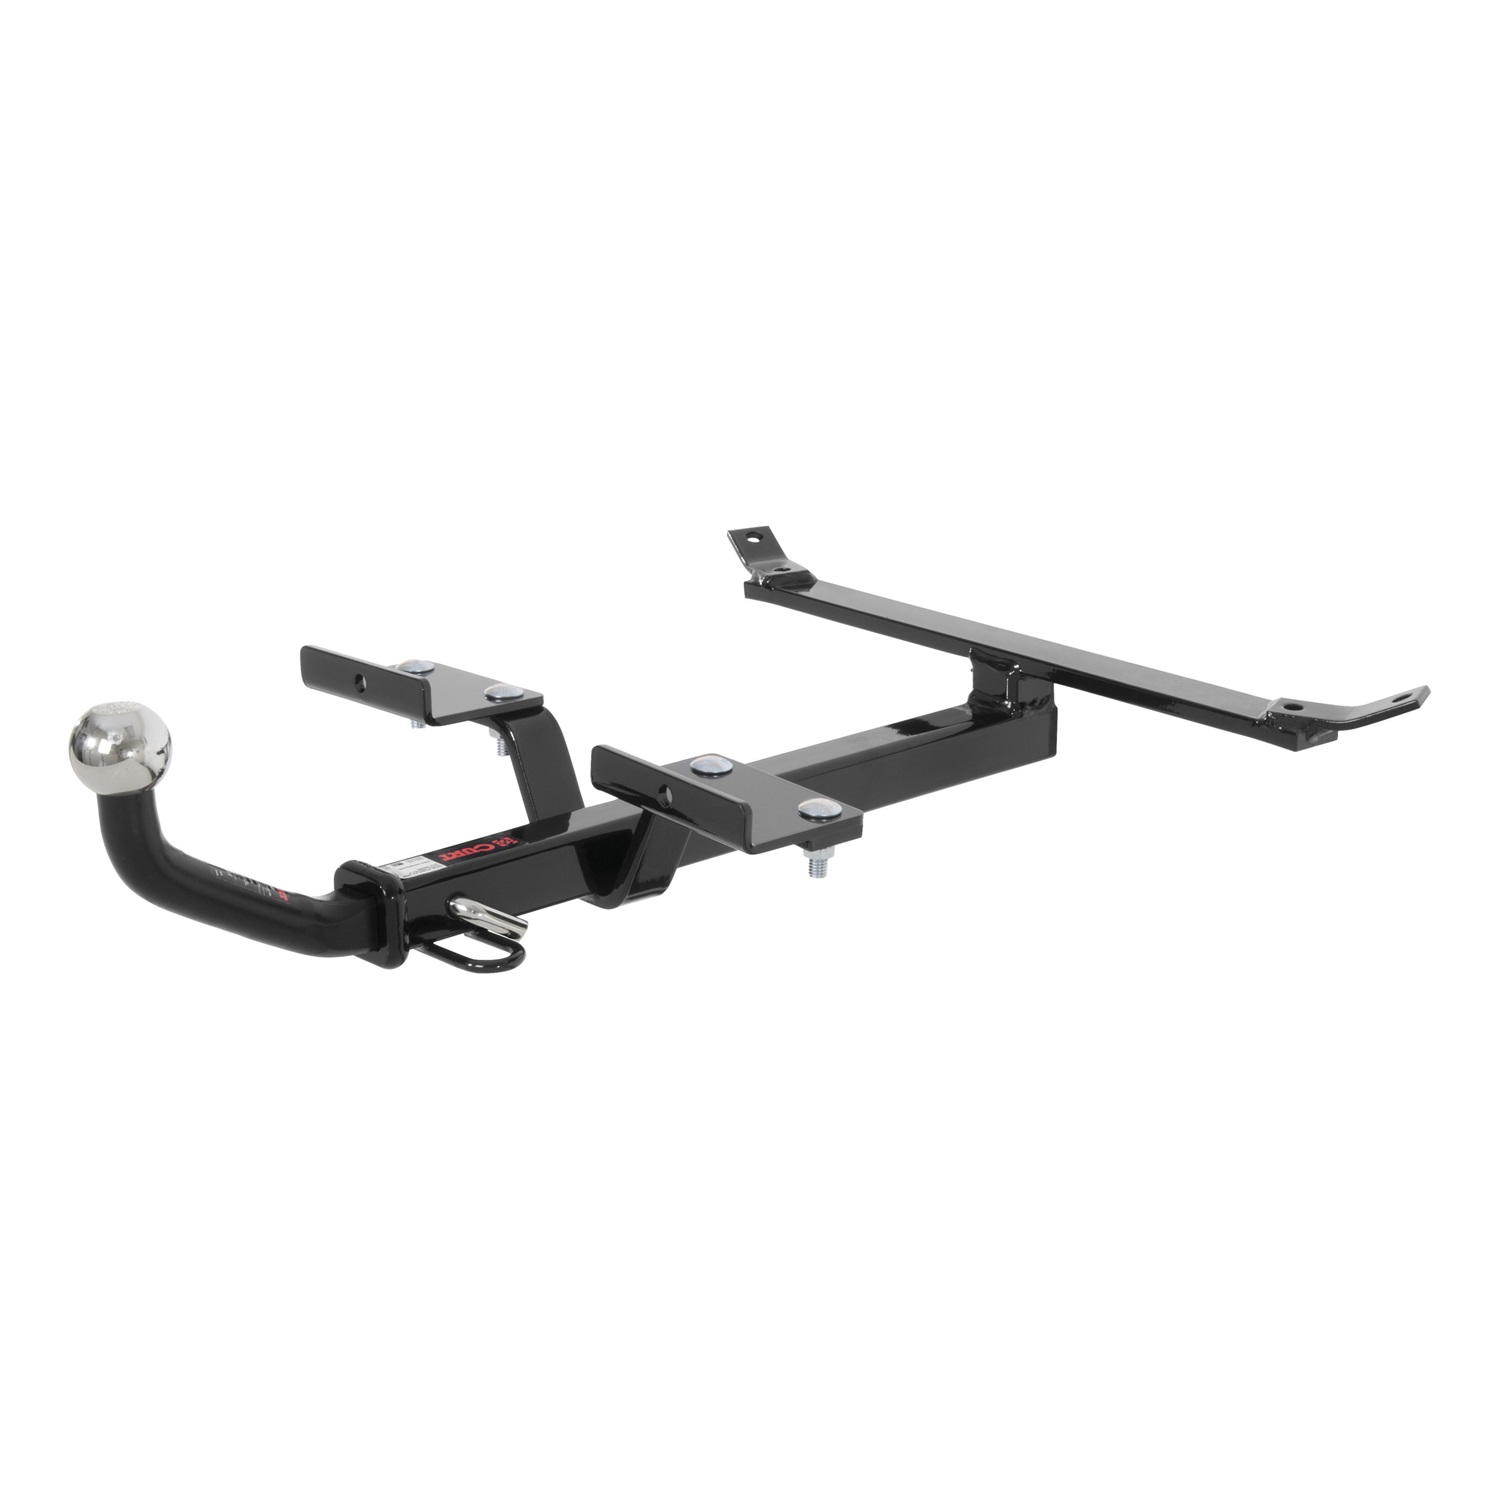 """CURT Class 1 Hitch, includes 1-7/8"""" Euro Mount, installation hardware, pin & clip"""